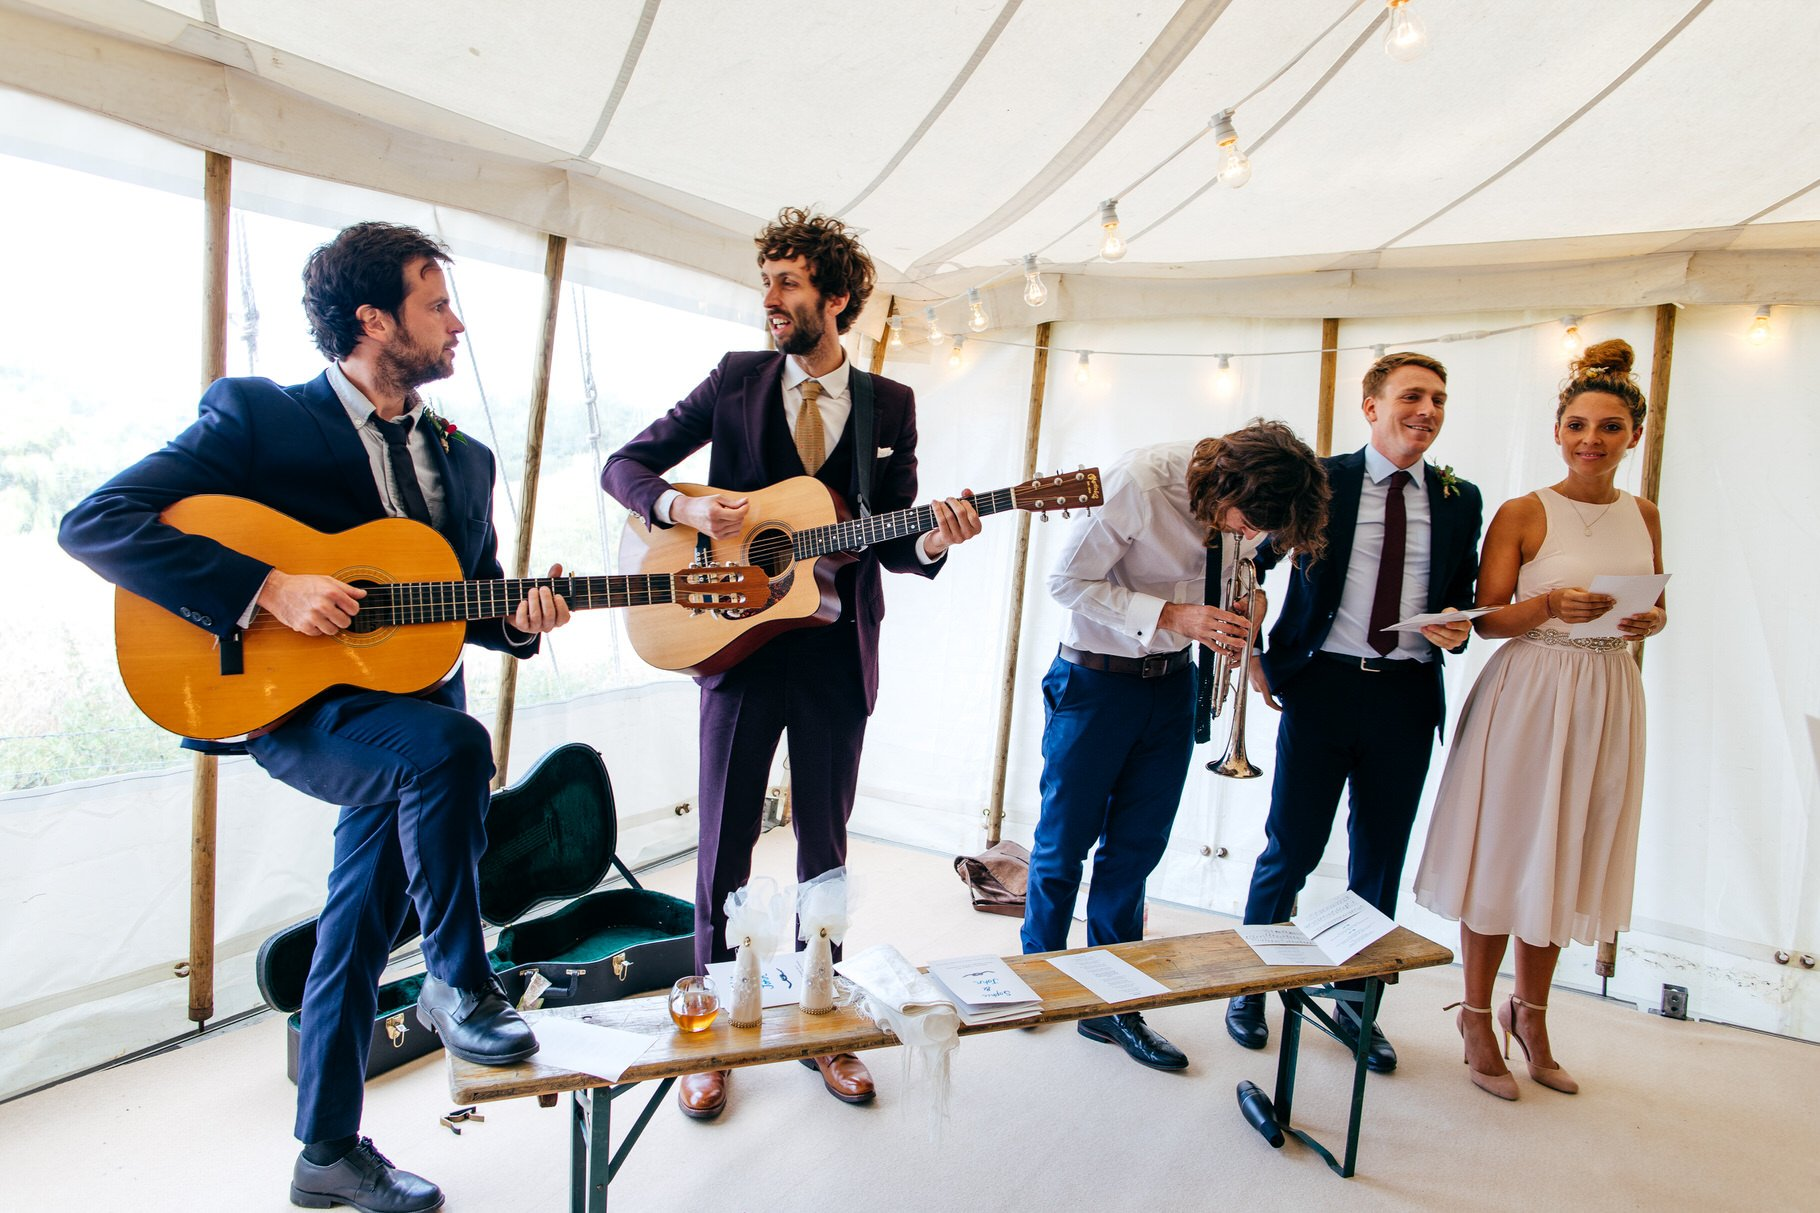 Musicians get ready to play their instruments in wedding tent